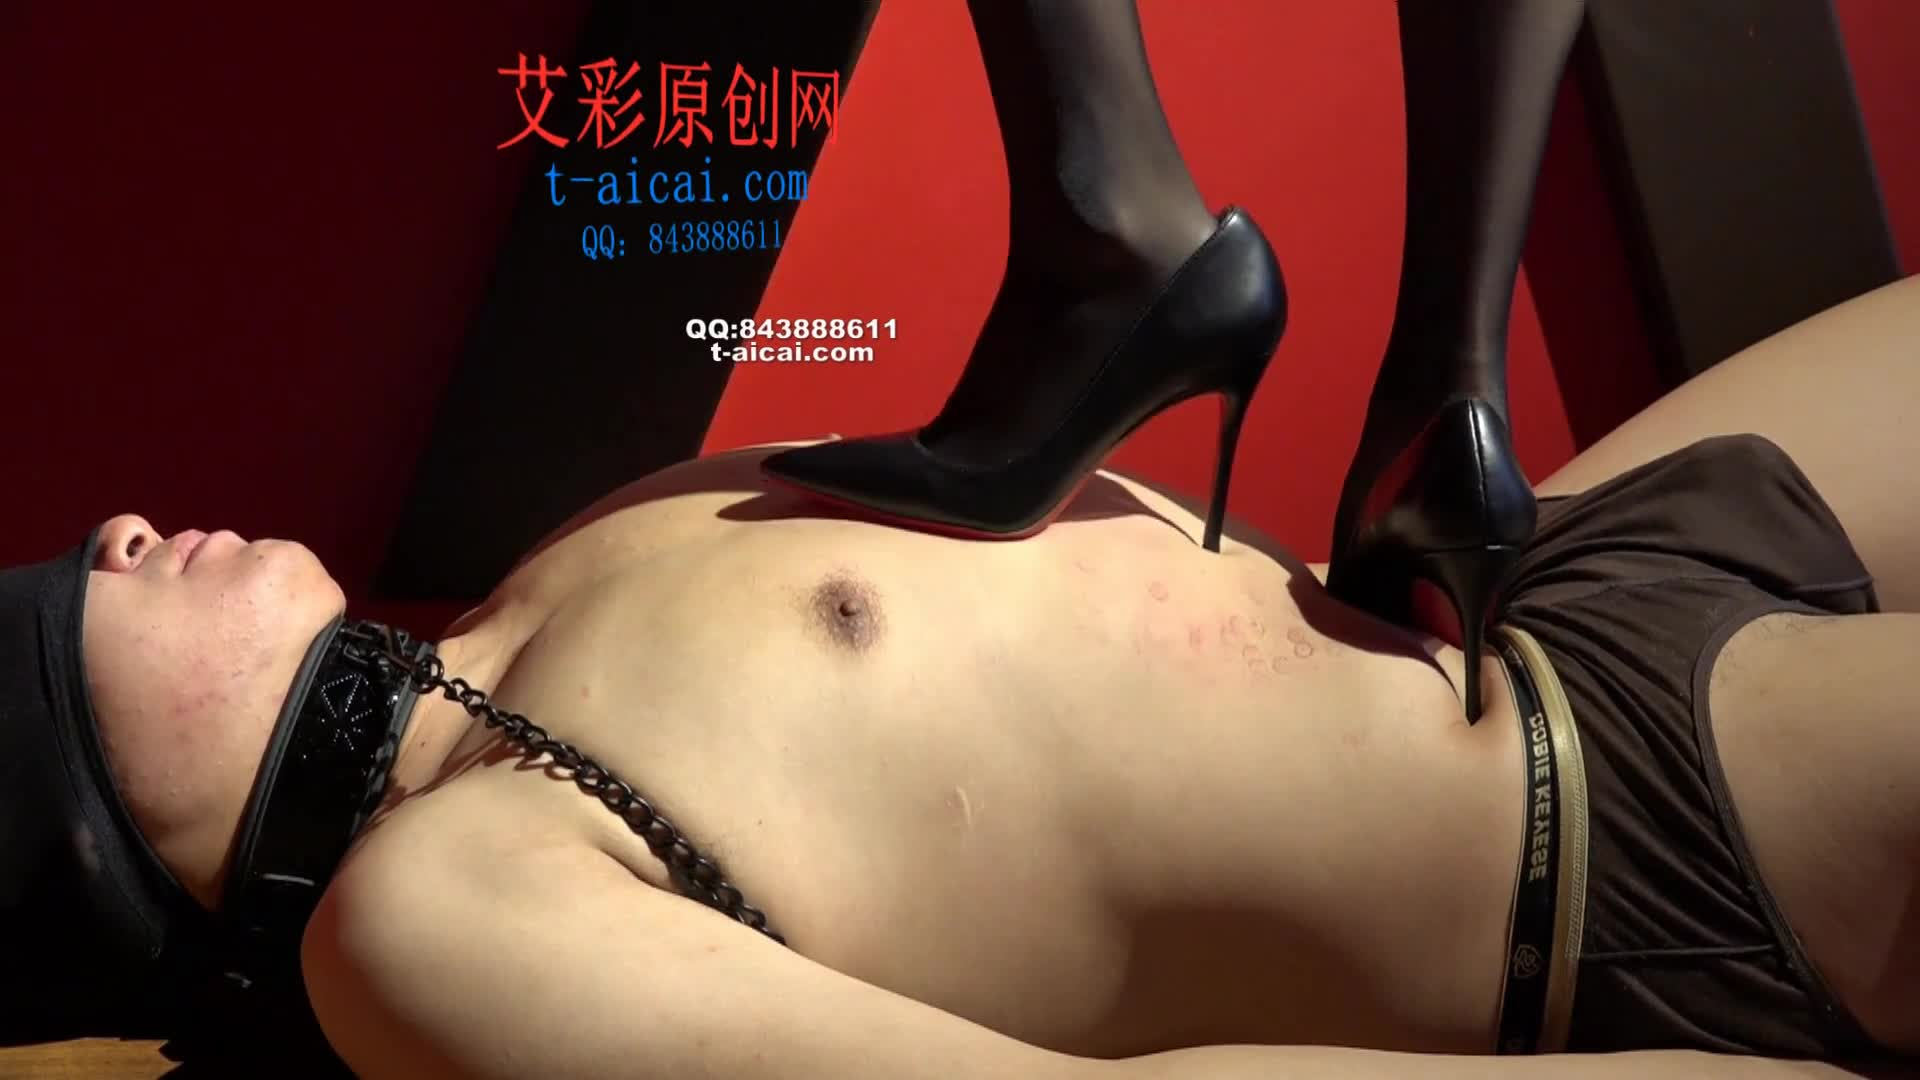 Black silk, high heels, cruel trampling, training, sharing